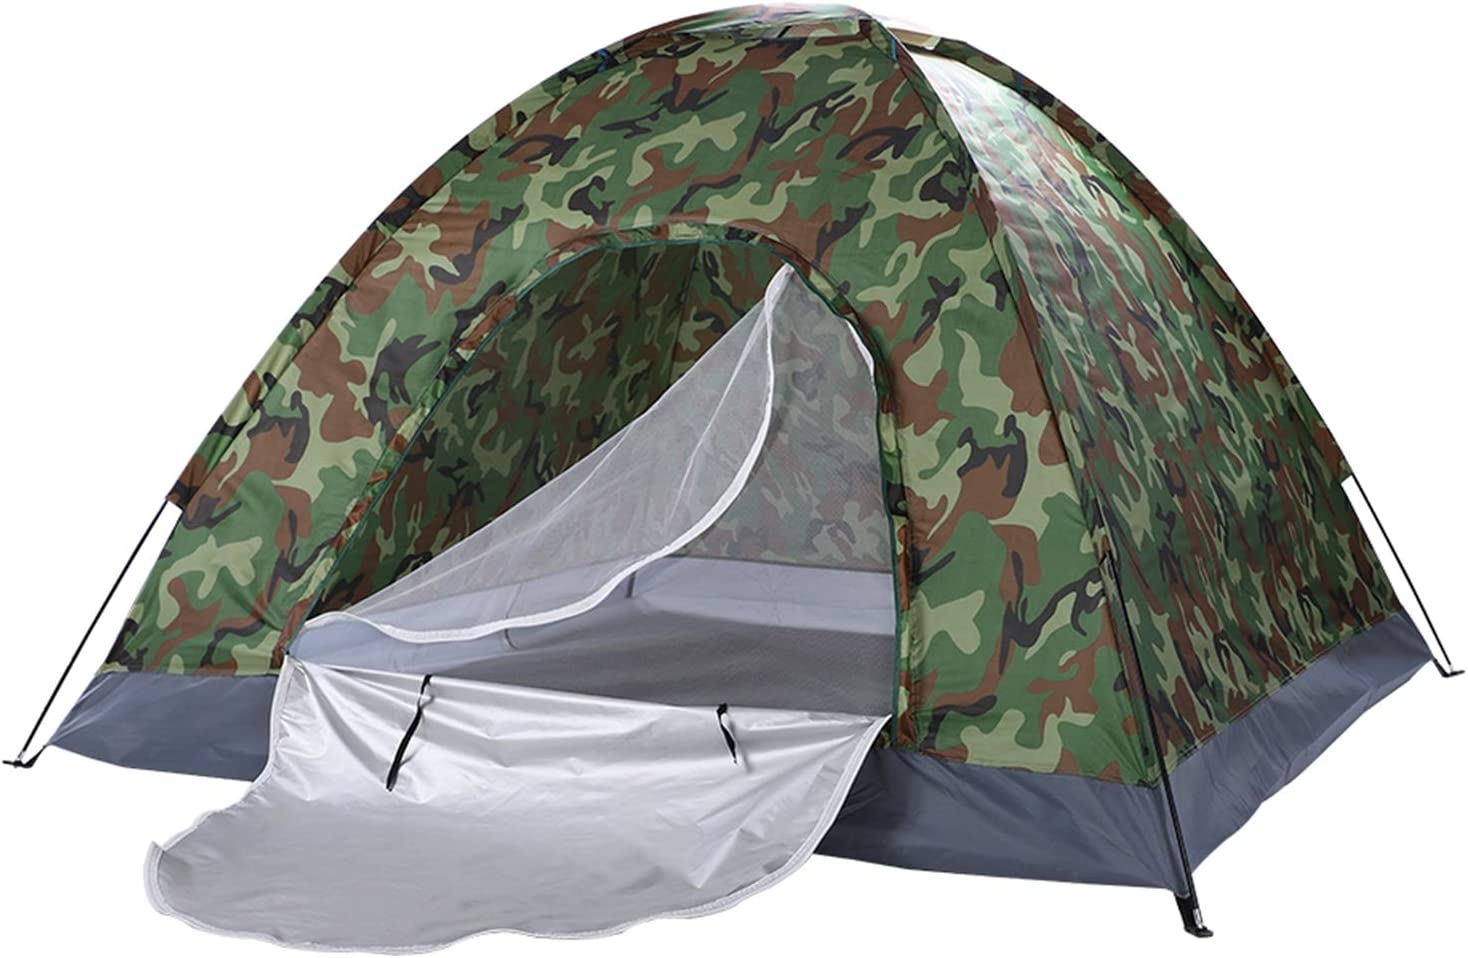 3-4 Person Tent New life Rain Fly Tents Lightweight Bag Carrying Oklahoma City Mall Dome